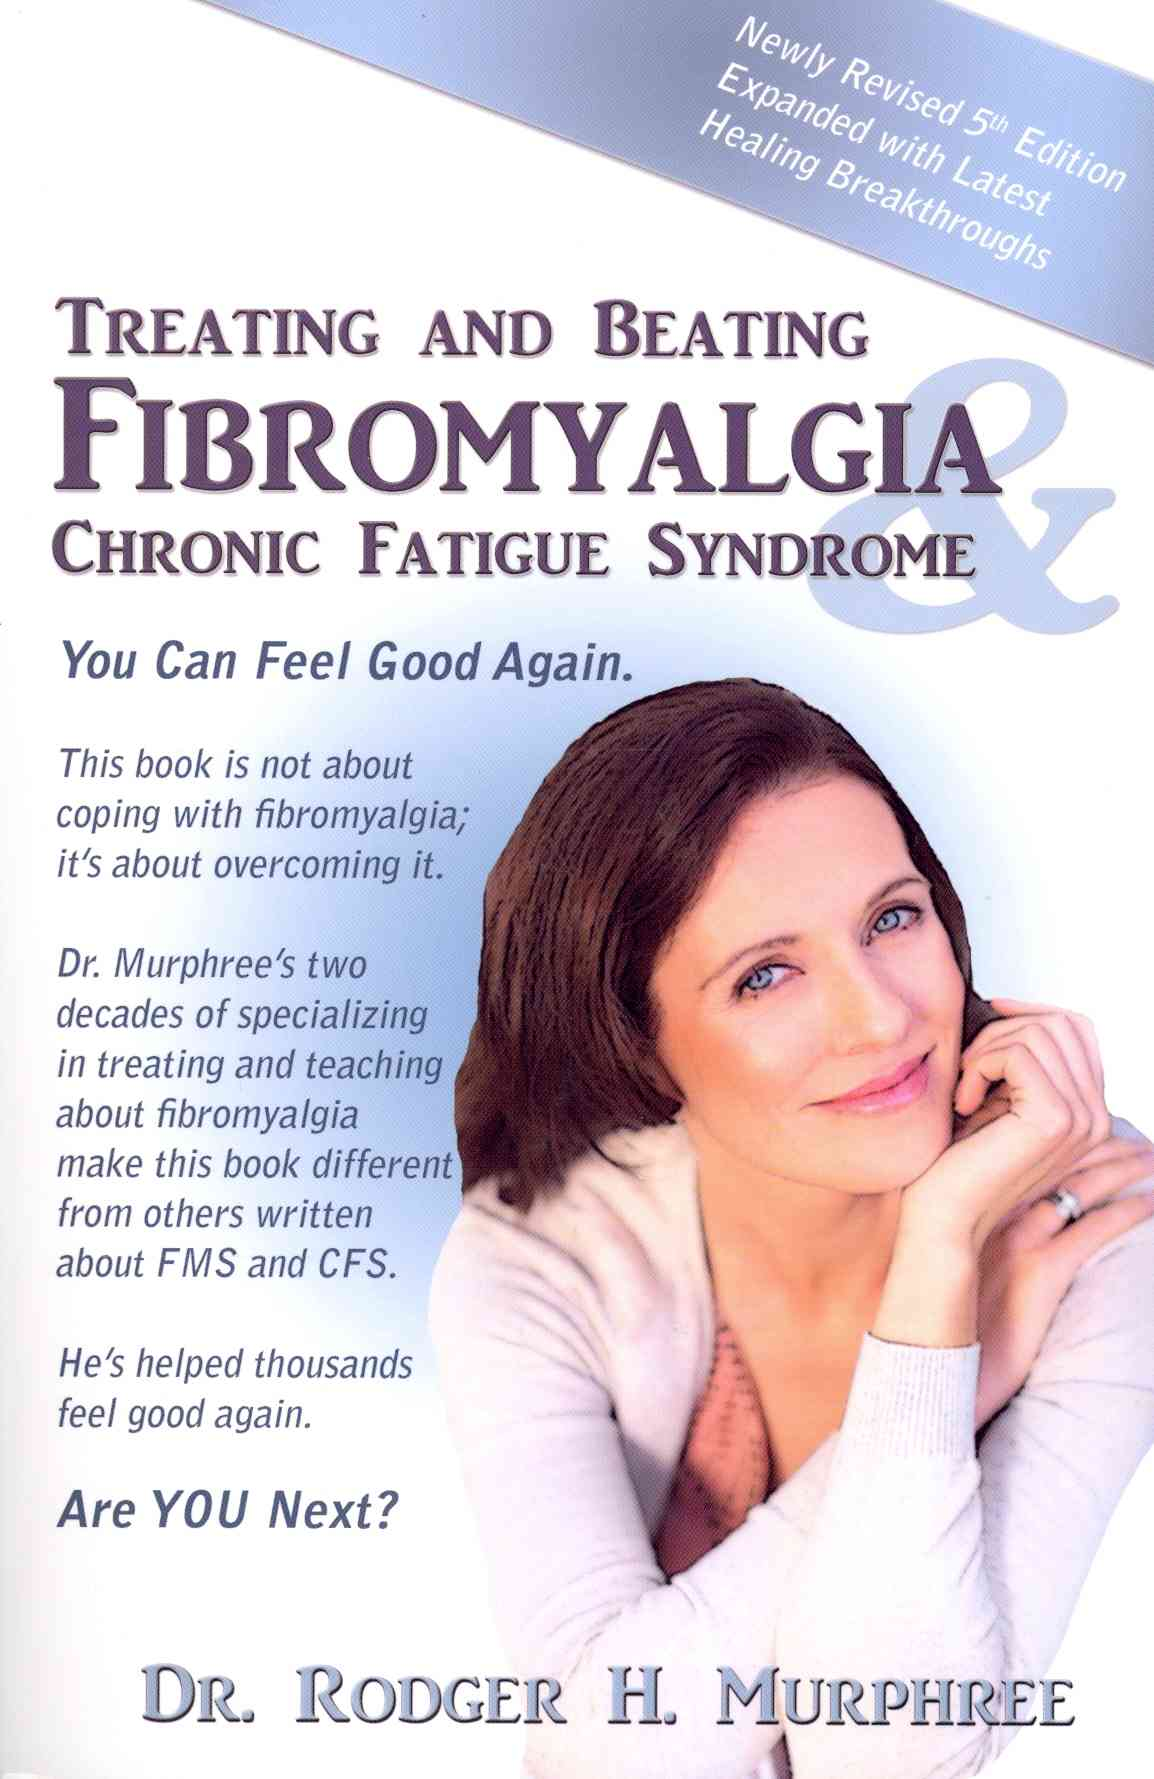 Treating and Beating Fibromyalgia and Chronic Fatigue Syndrome By Murphree, Rodger H.